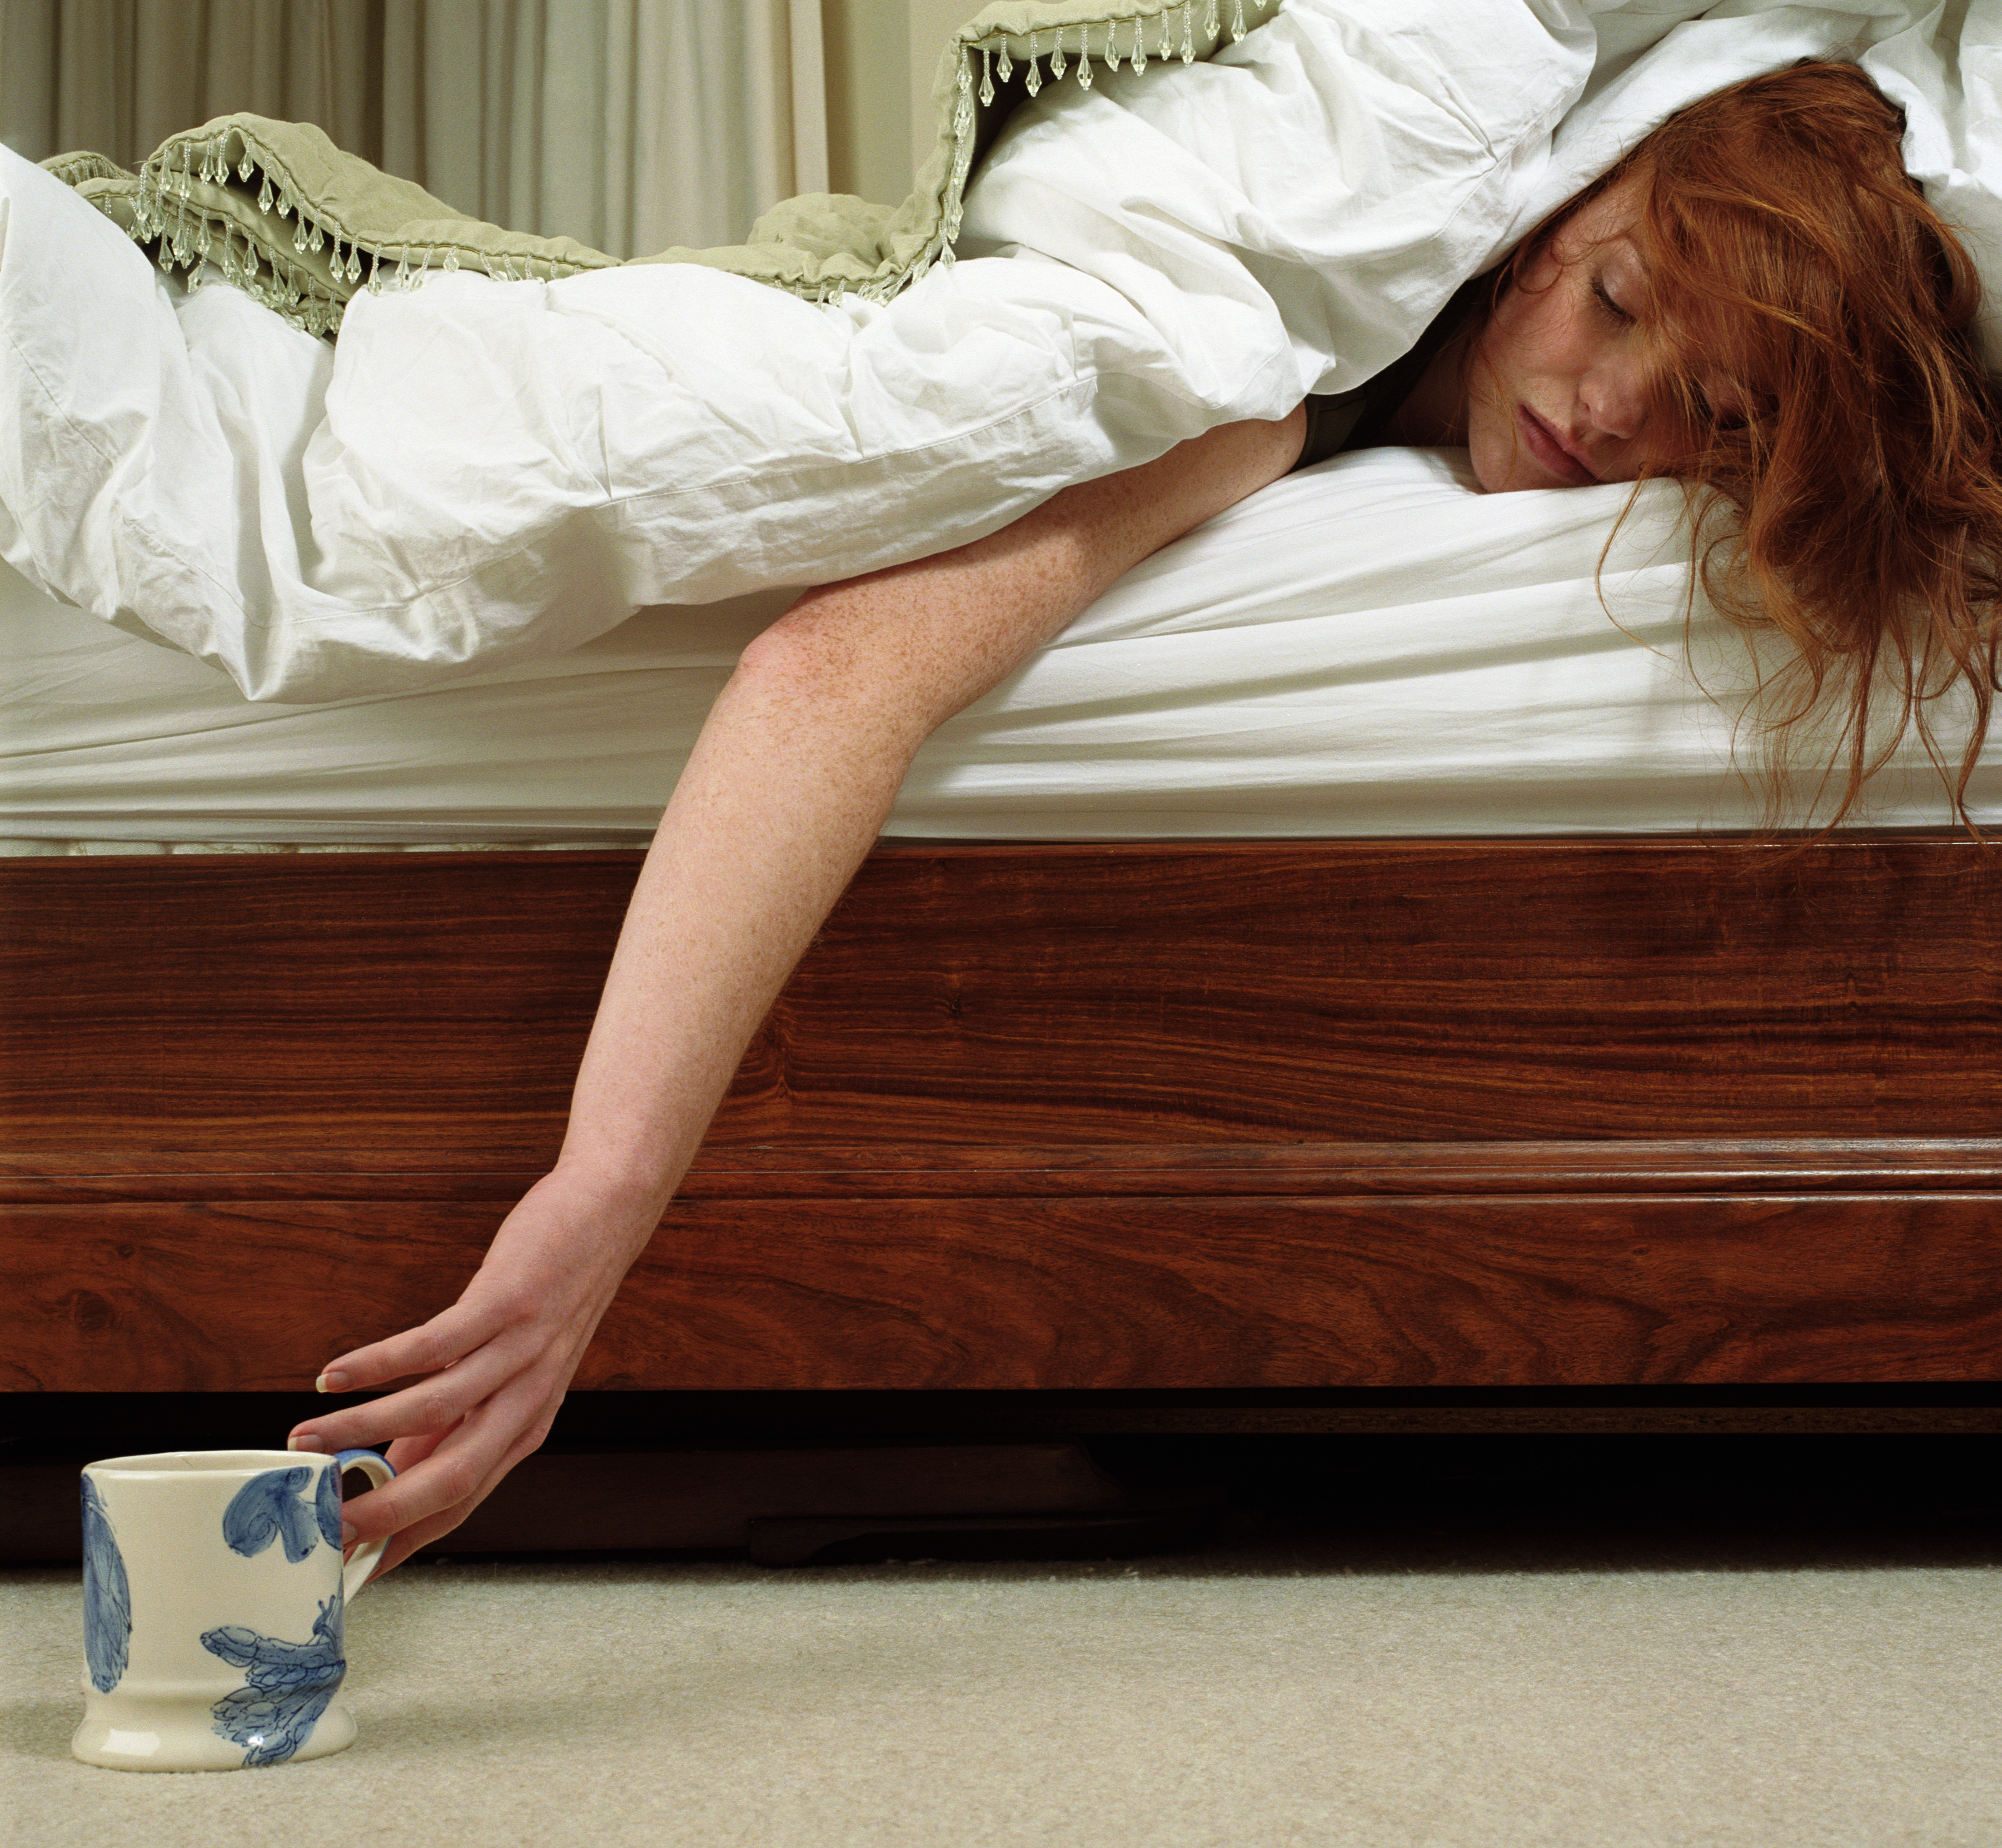 Woman lying in bed reaching for mug on carpet, eyes closed